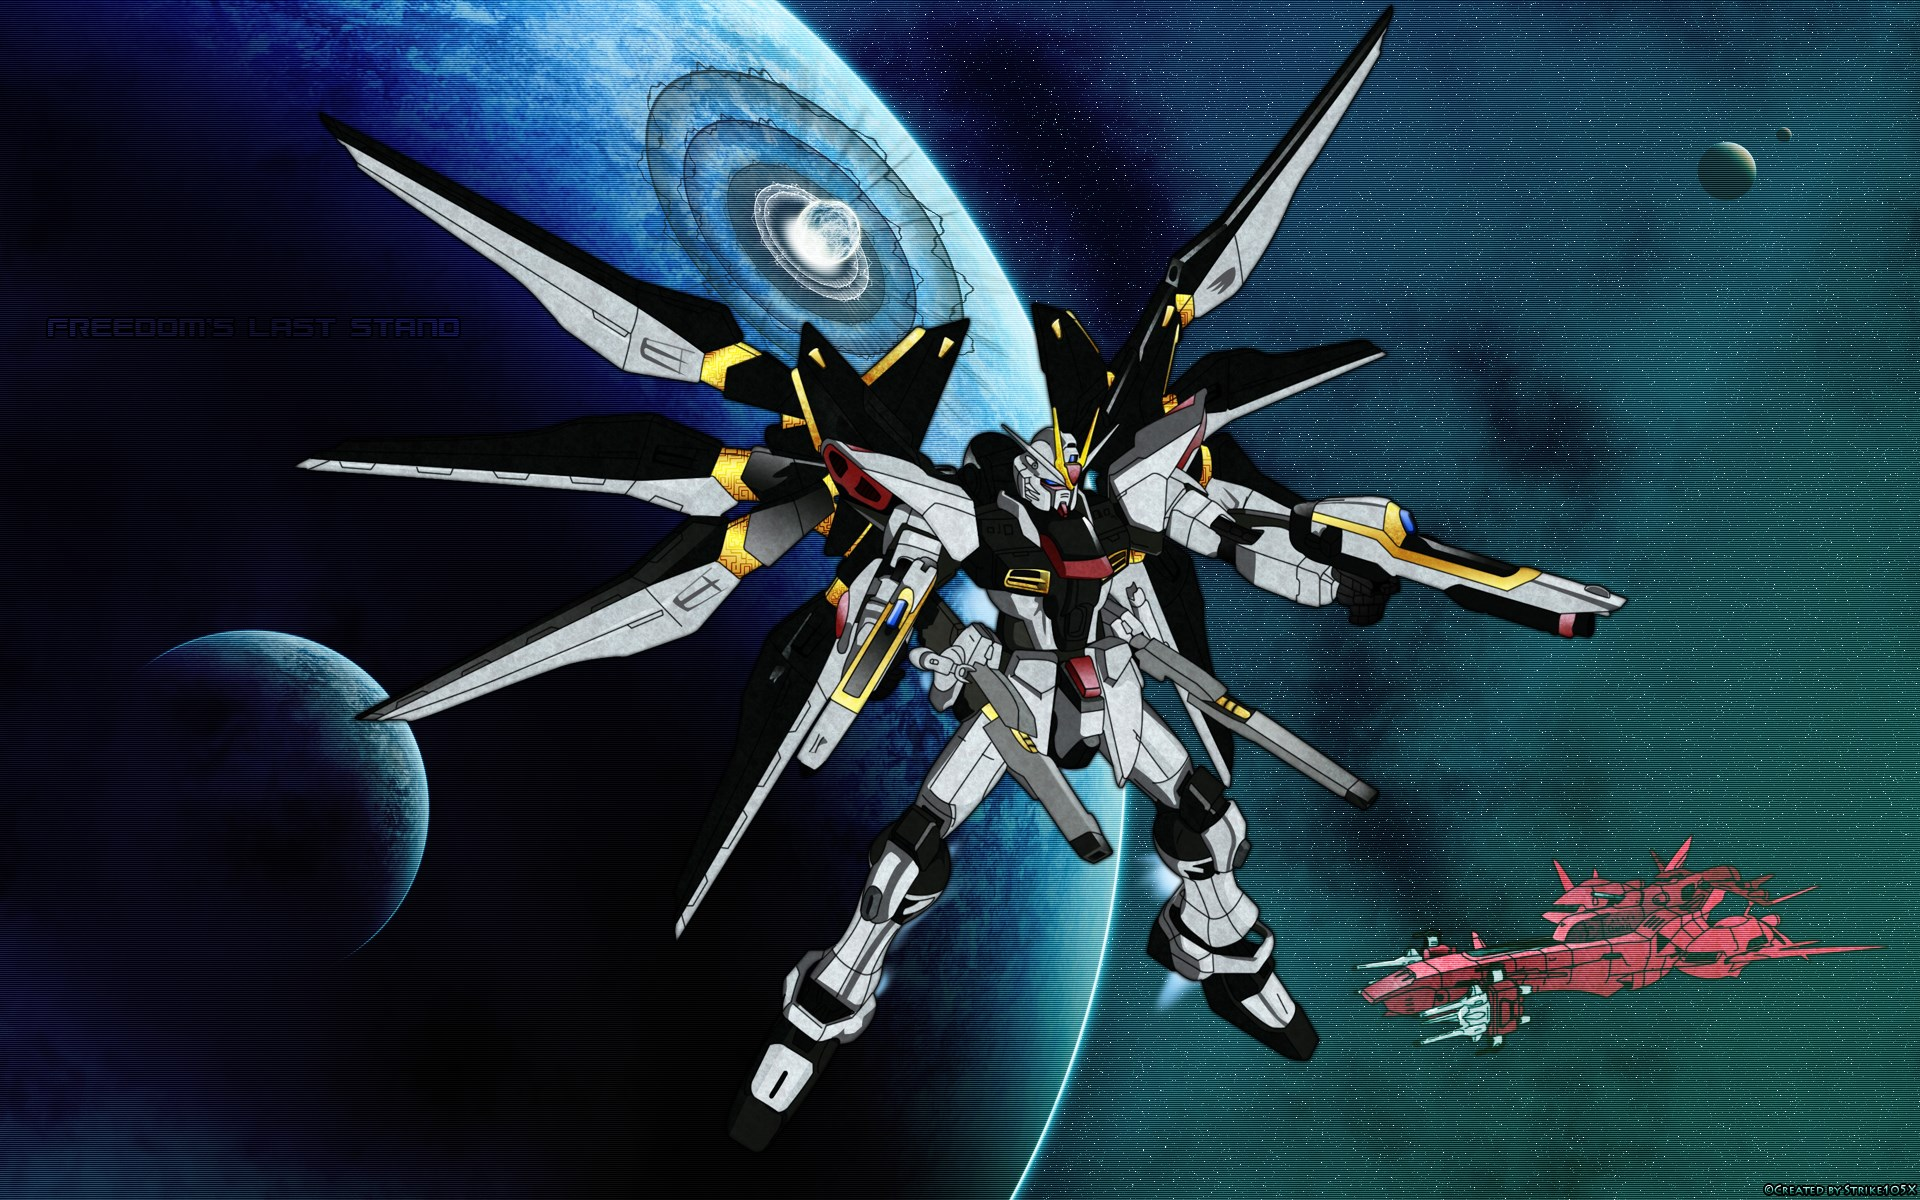 1920x1200 - Mobile Suit Gundam Seed Destiny Wallpapers 20